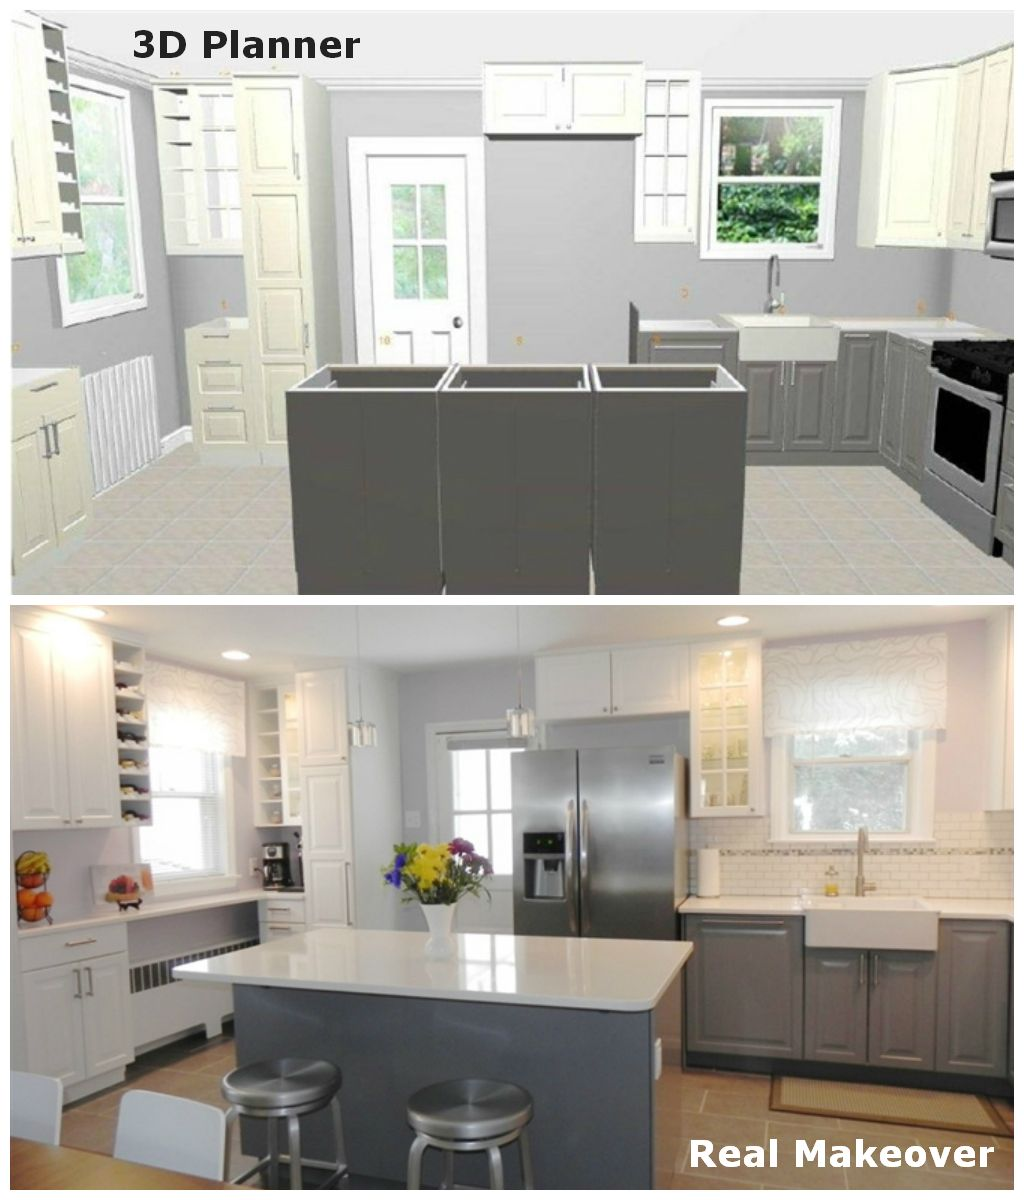 Kitchen Planner: This IKEA Blogger Created Her Dream Kitchen In IKEA 3D